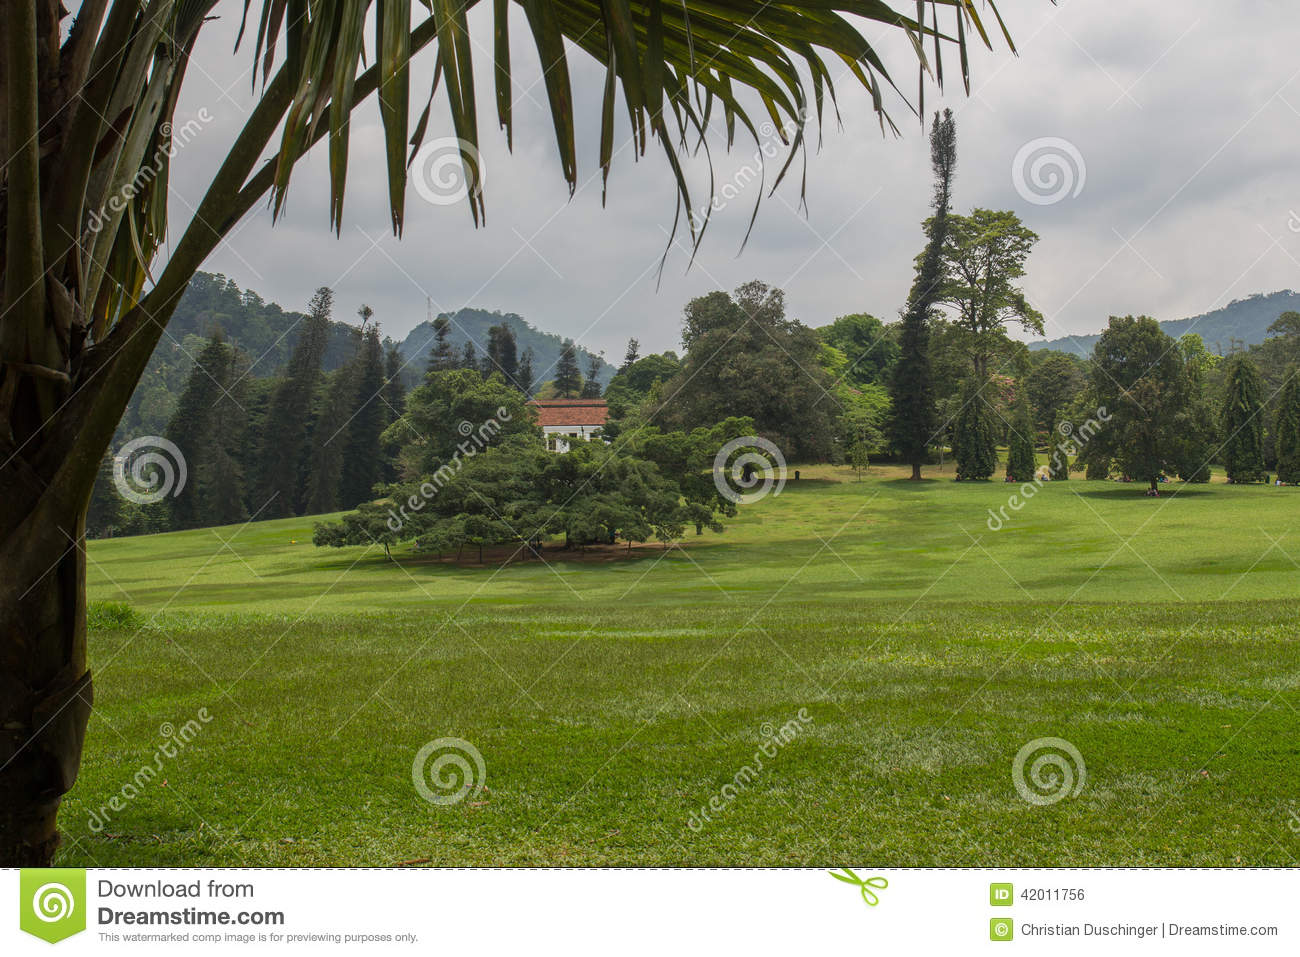 Ficus Benjamina In Peradeniya Botanical Gardens Stock Photo.